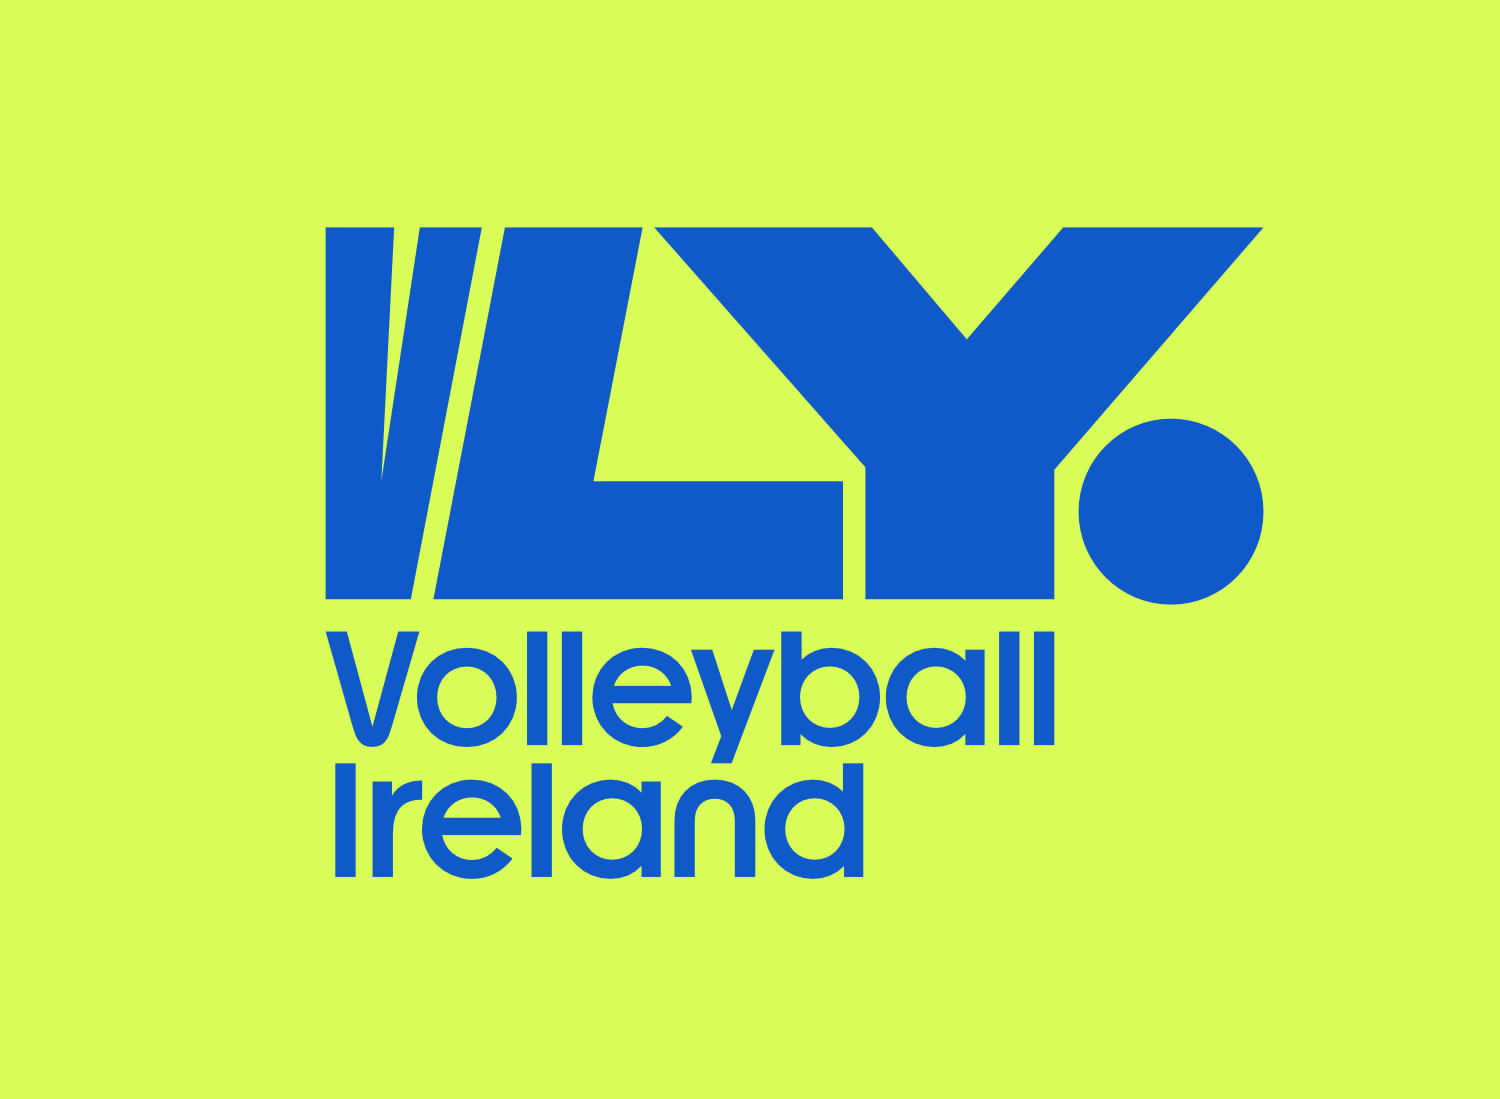 Volleyball Ireland – Logo, Quelle: Volleyball Ireland